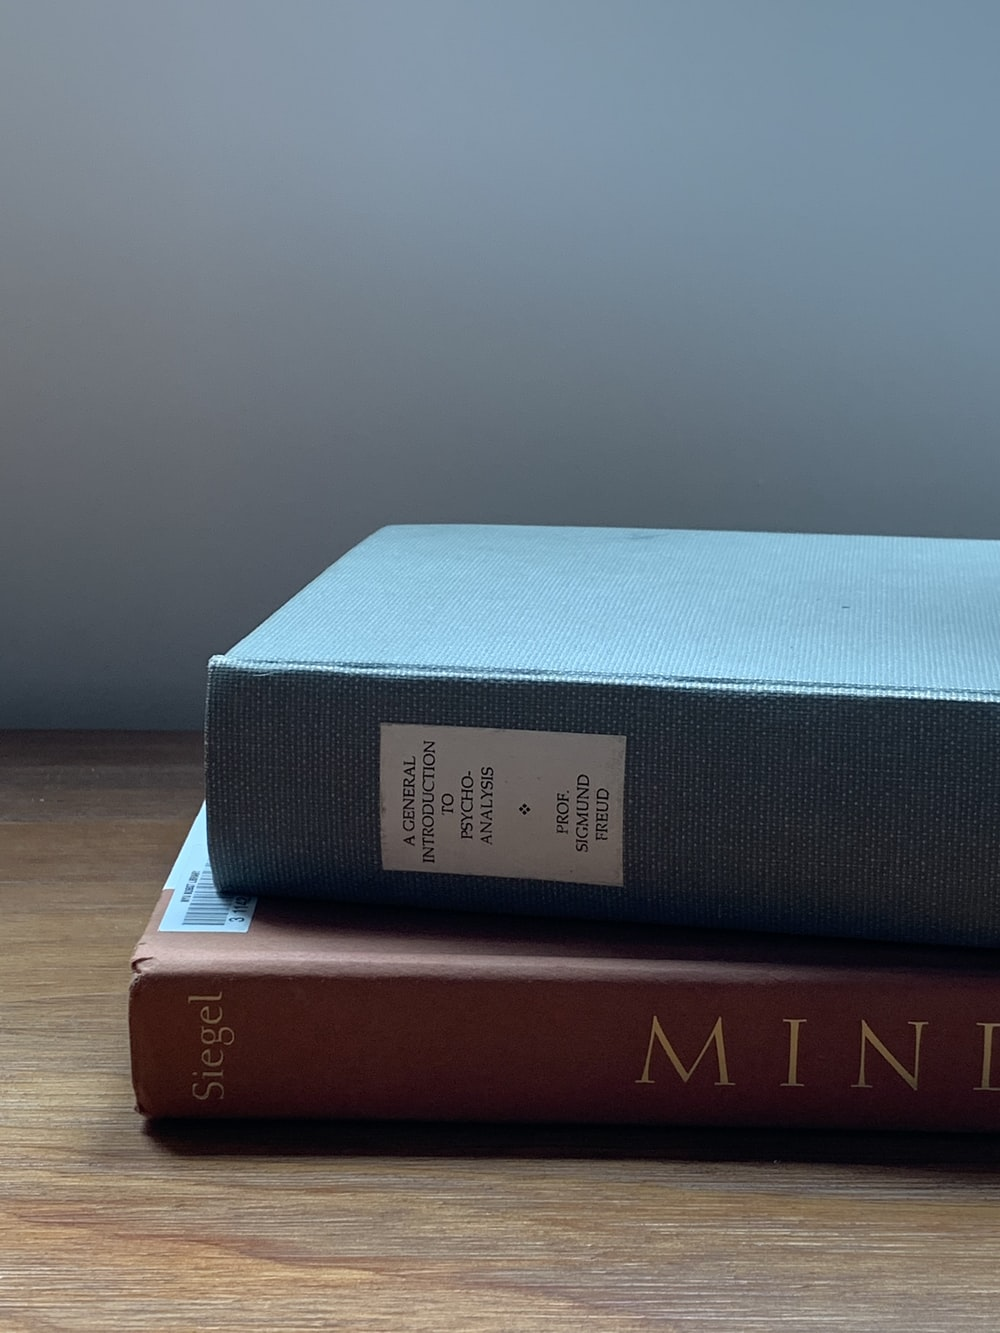 blue and red book on brown wooden table